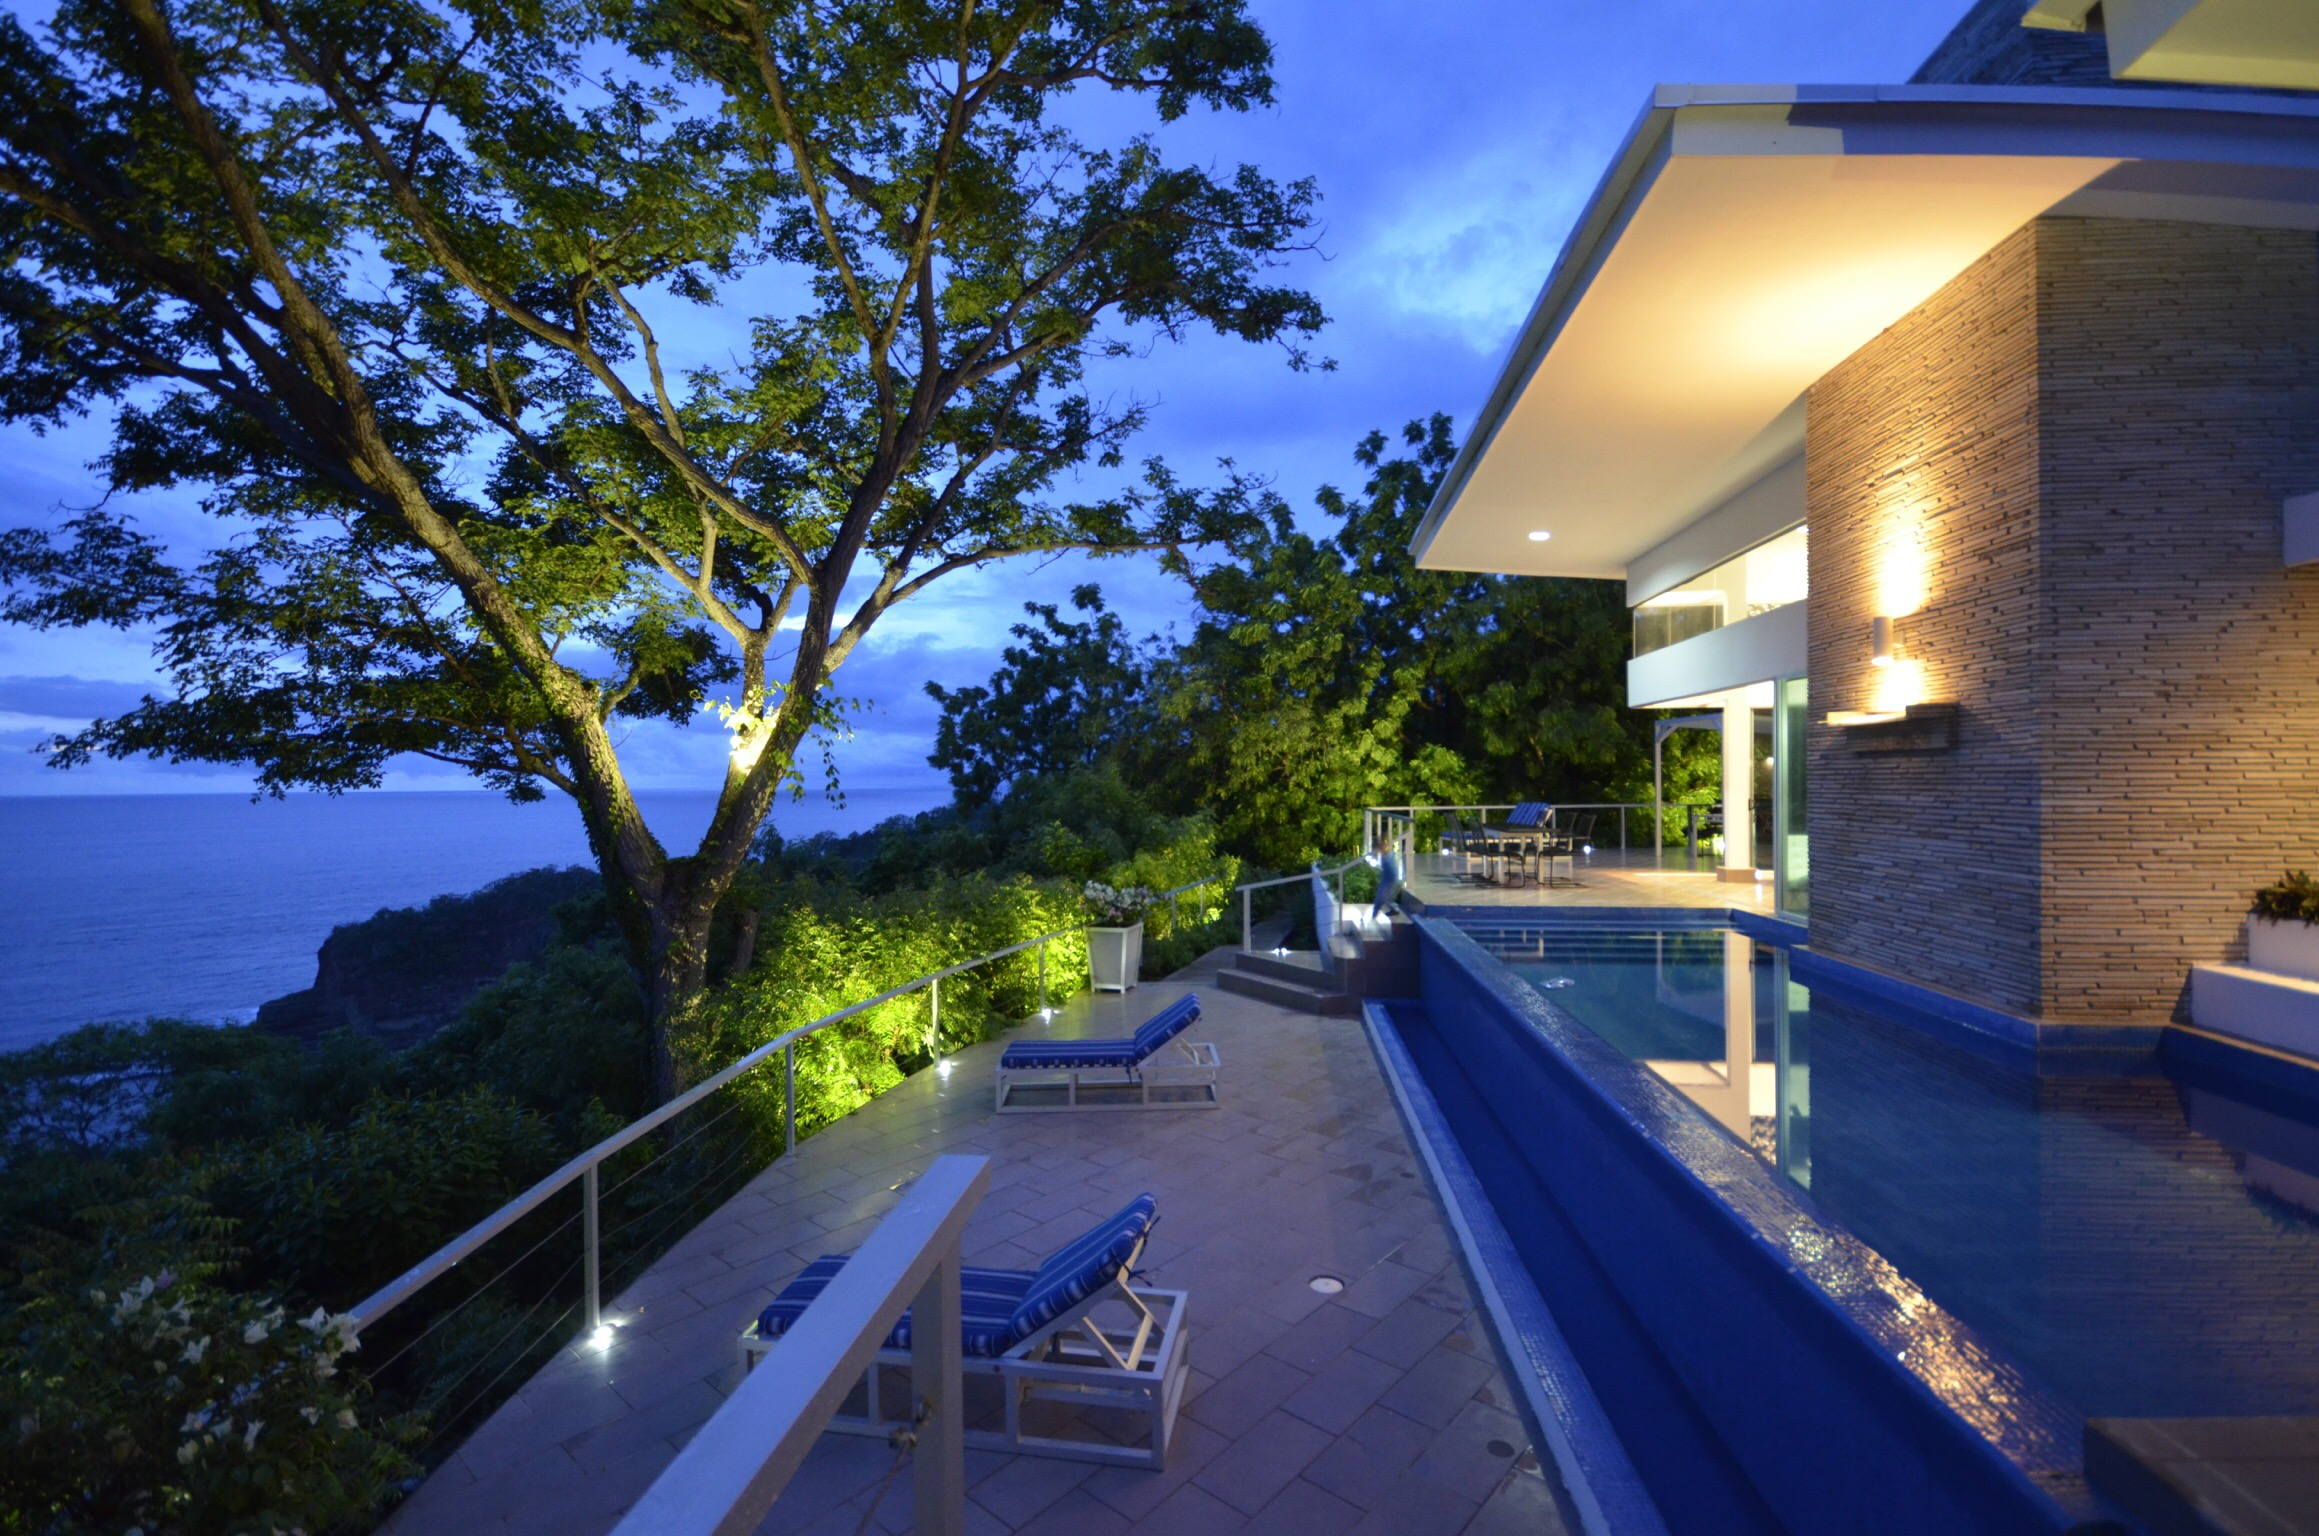 Beautiful outdoor pool with view, best architect design, exterior work, T6 Beach Residence